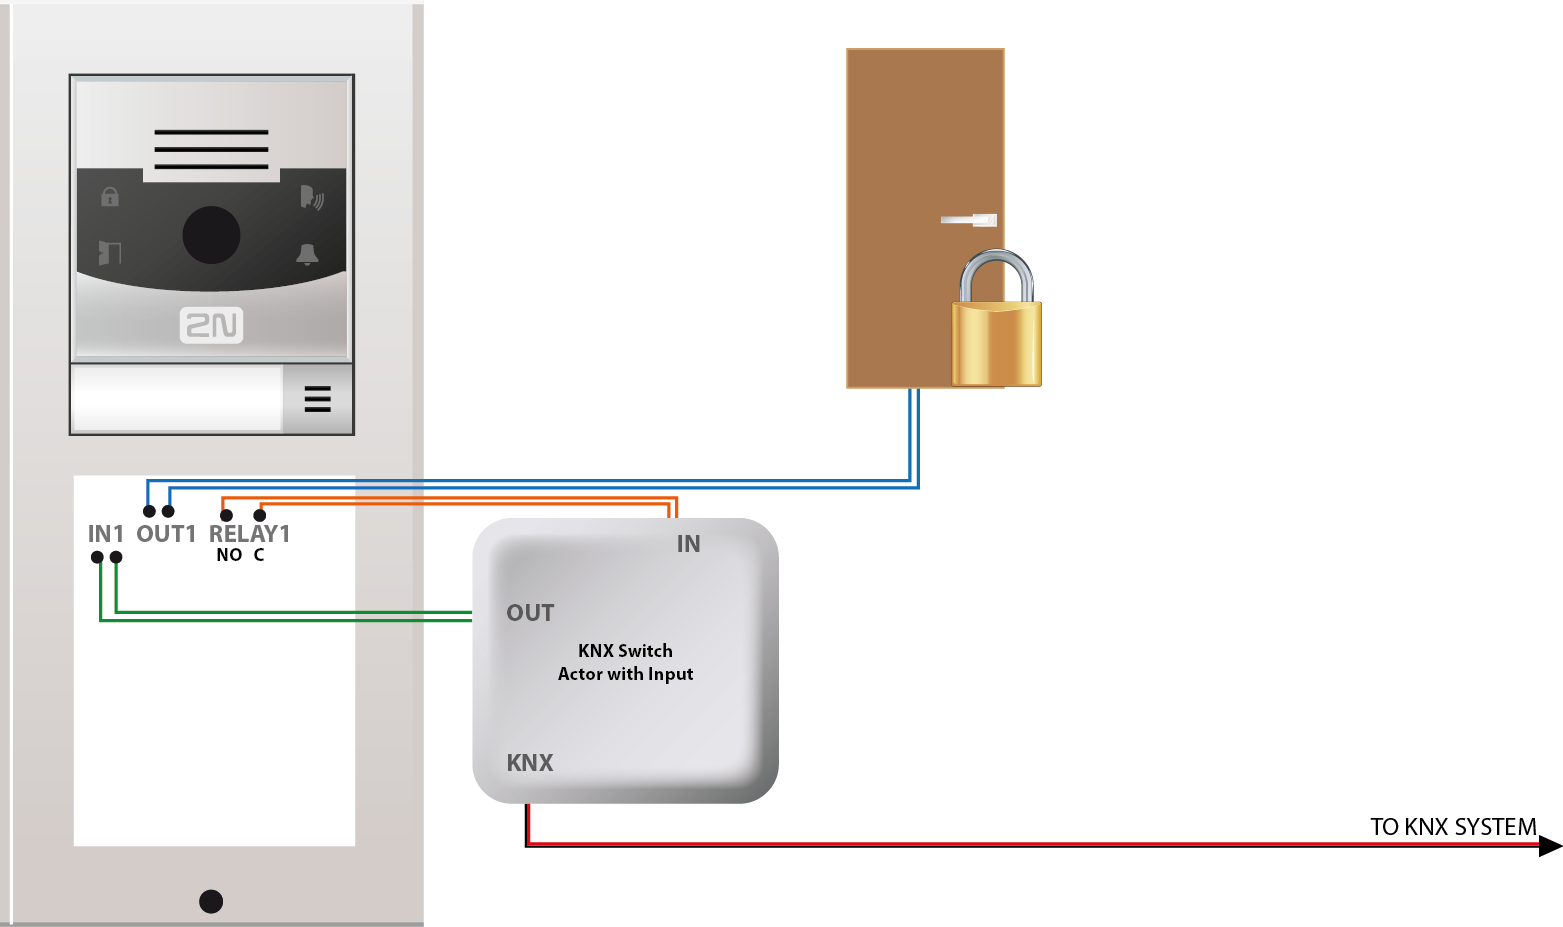 Helios 2n Wiring Diagram Naa Ford Tractor Electrical Knx Connection Of The Ip Intercom And System Faq Wiki A Kit For 2000